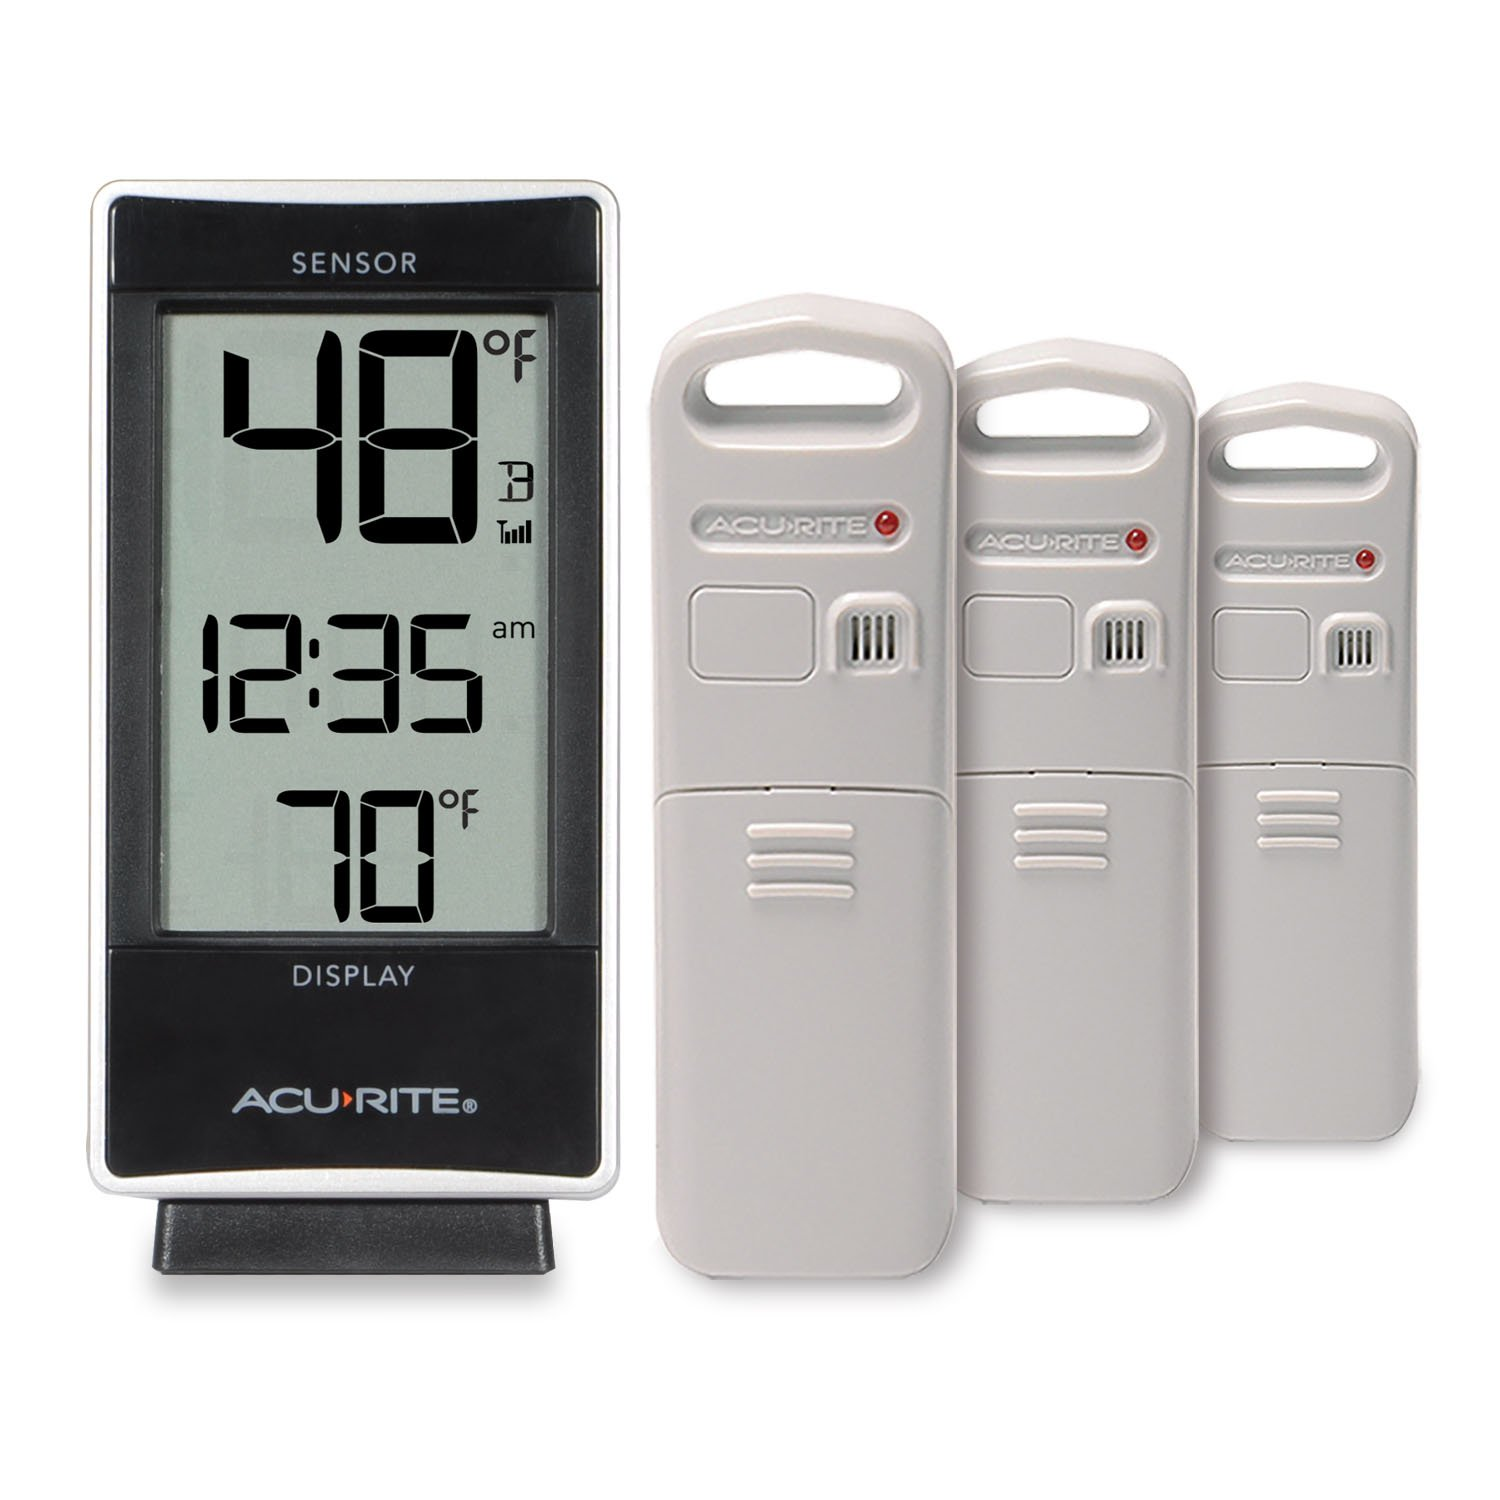 AcuRite 01090M Multi-Sensor Thermometer with 3 Indoor/Outdoor Temperature Sensors